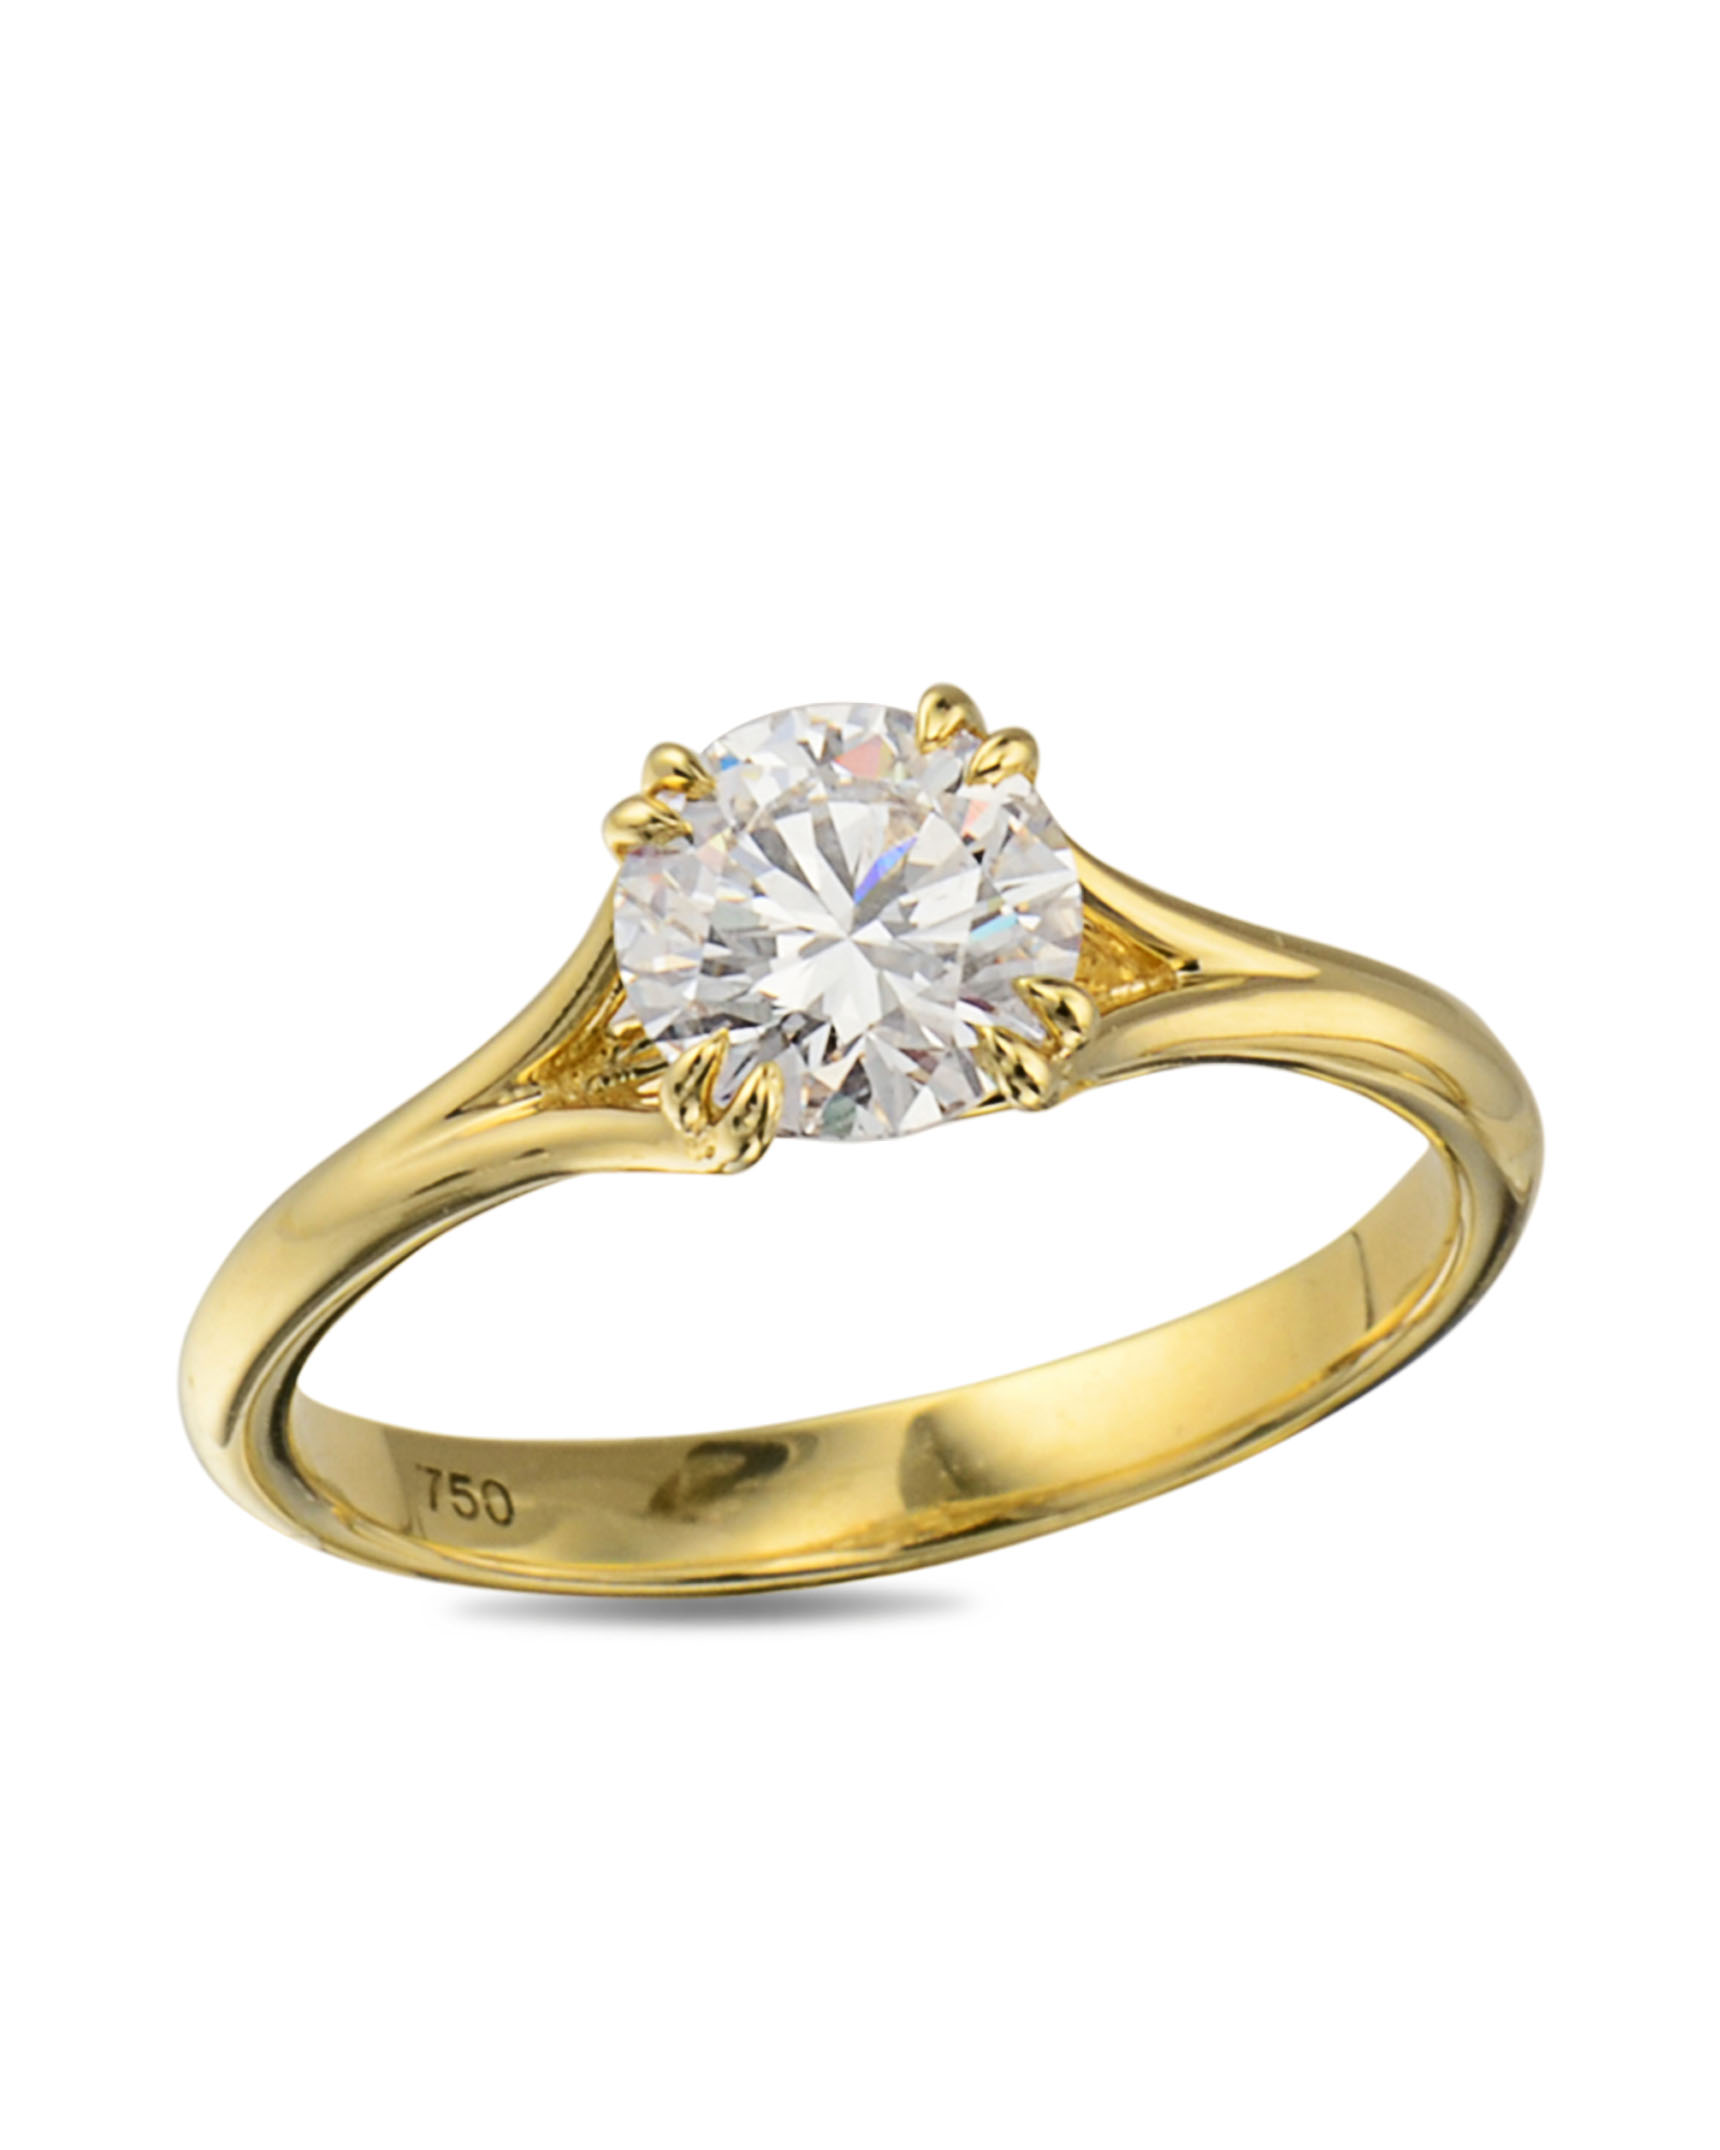 diamond earth jewellery glamour gallery engagement under ring main dollars style rings antique brilliant weddings halo